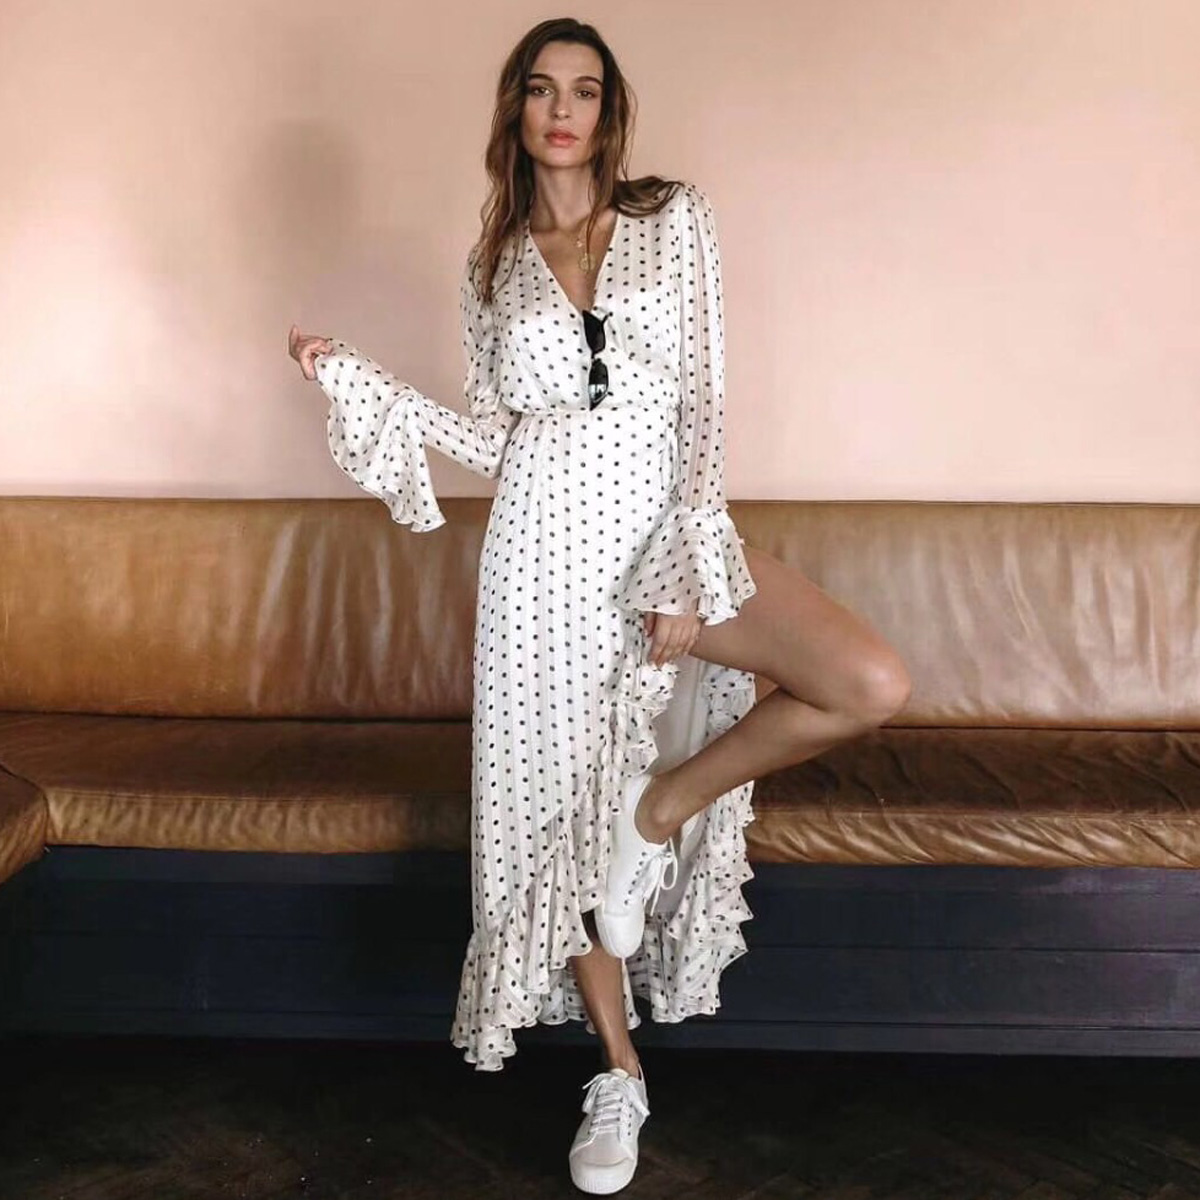 Jastie 2019 Women Long Sleeves Ruffle Hem Wrap Dress Polka Dot Print Dresses Boho Casual Beach